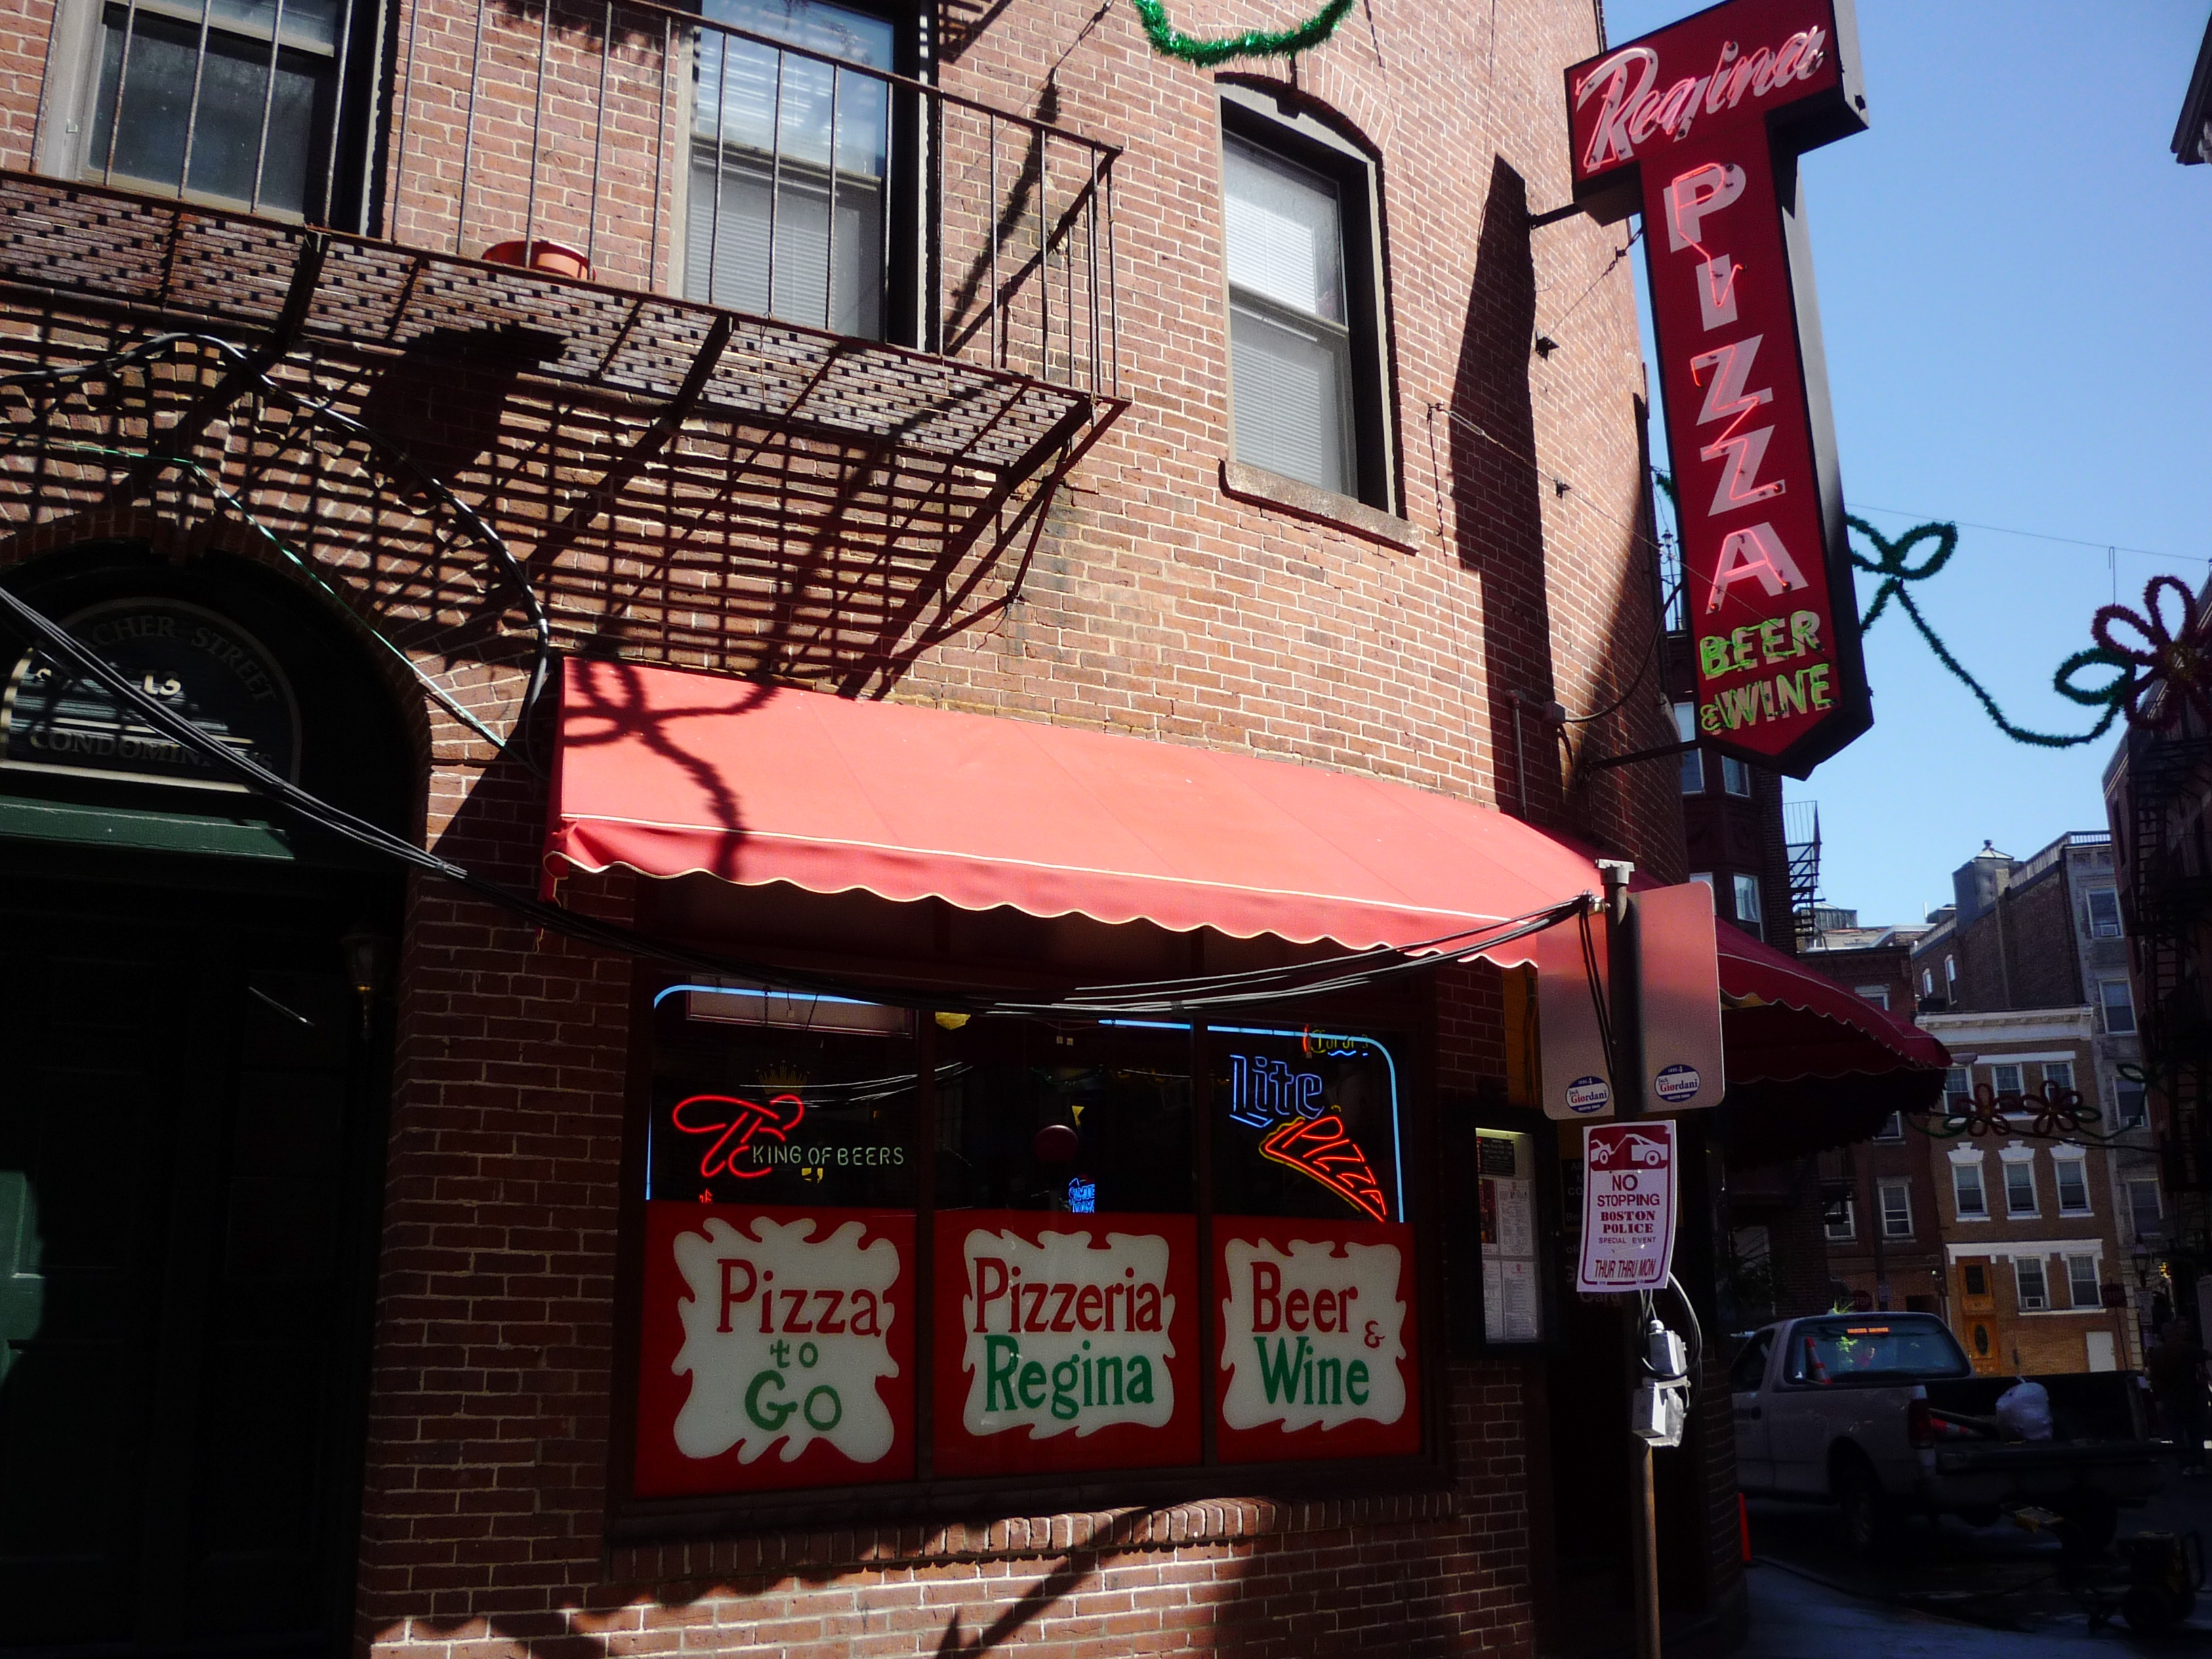 Regina Pizzeria in the North End of Boston, Massachusetts